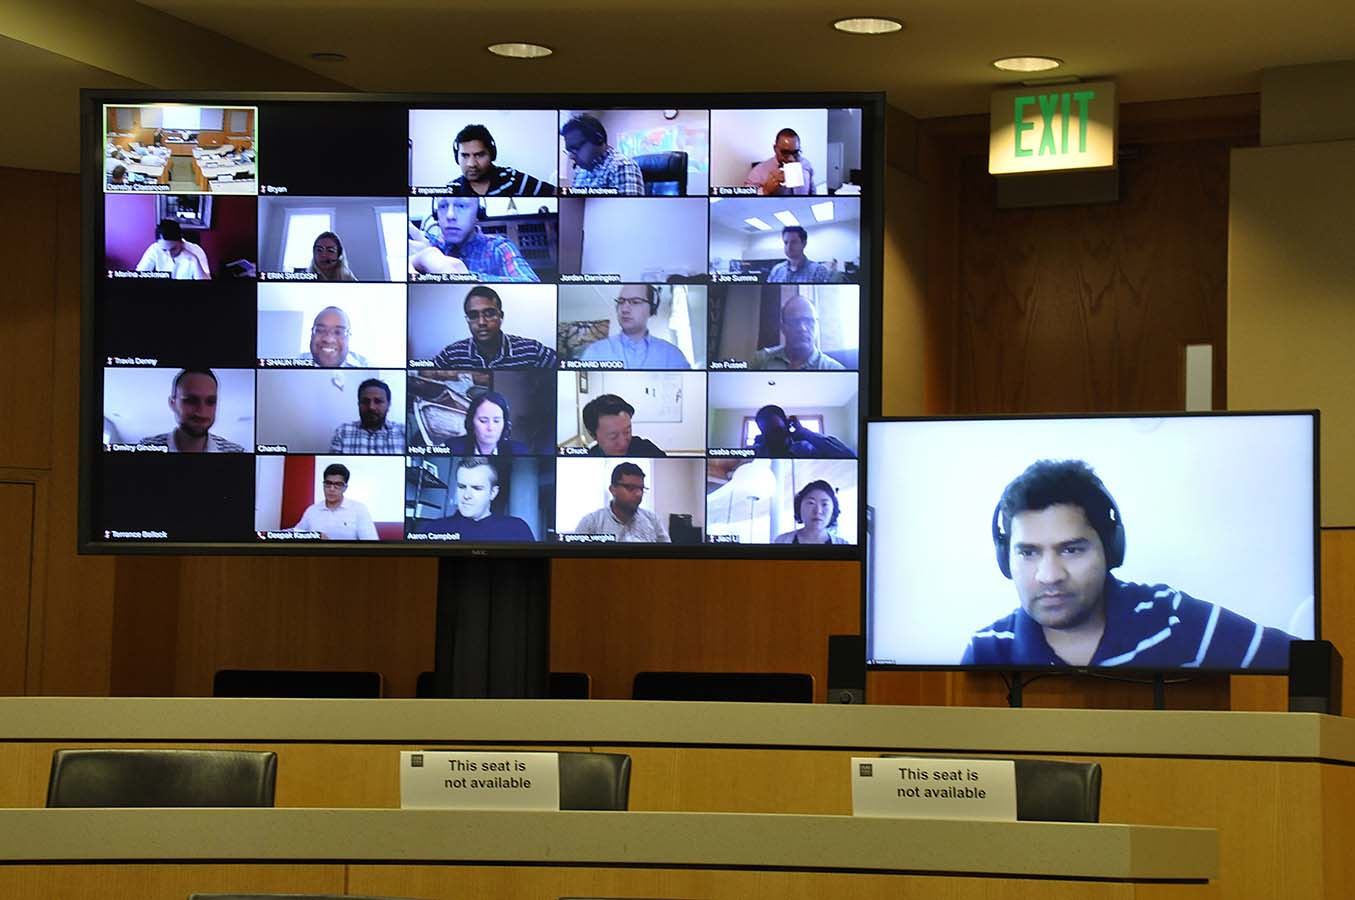 Classroom of Remote Students on Video Monitors